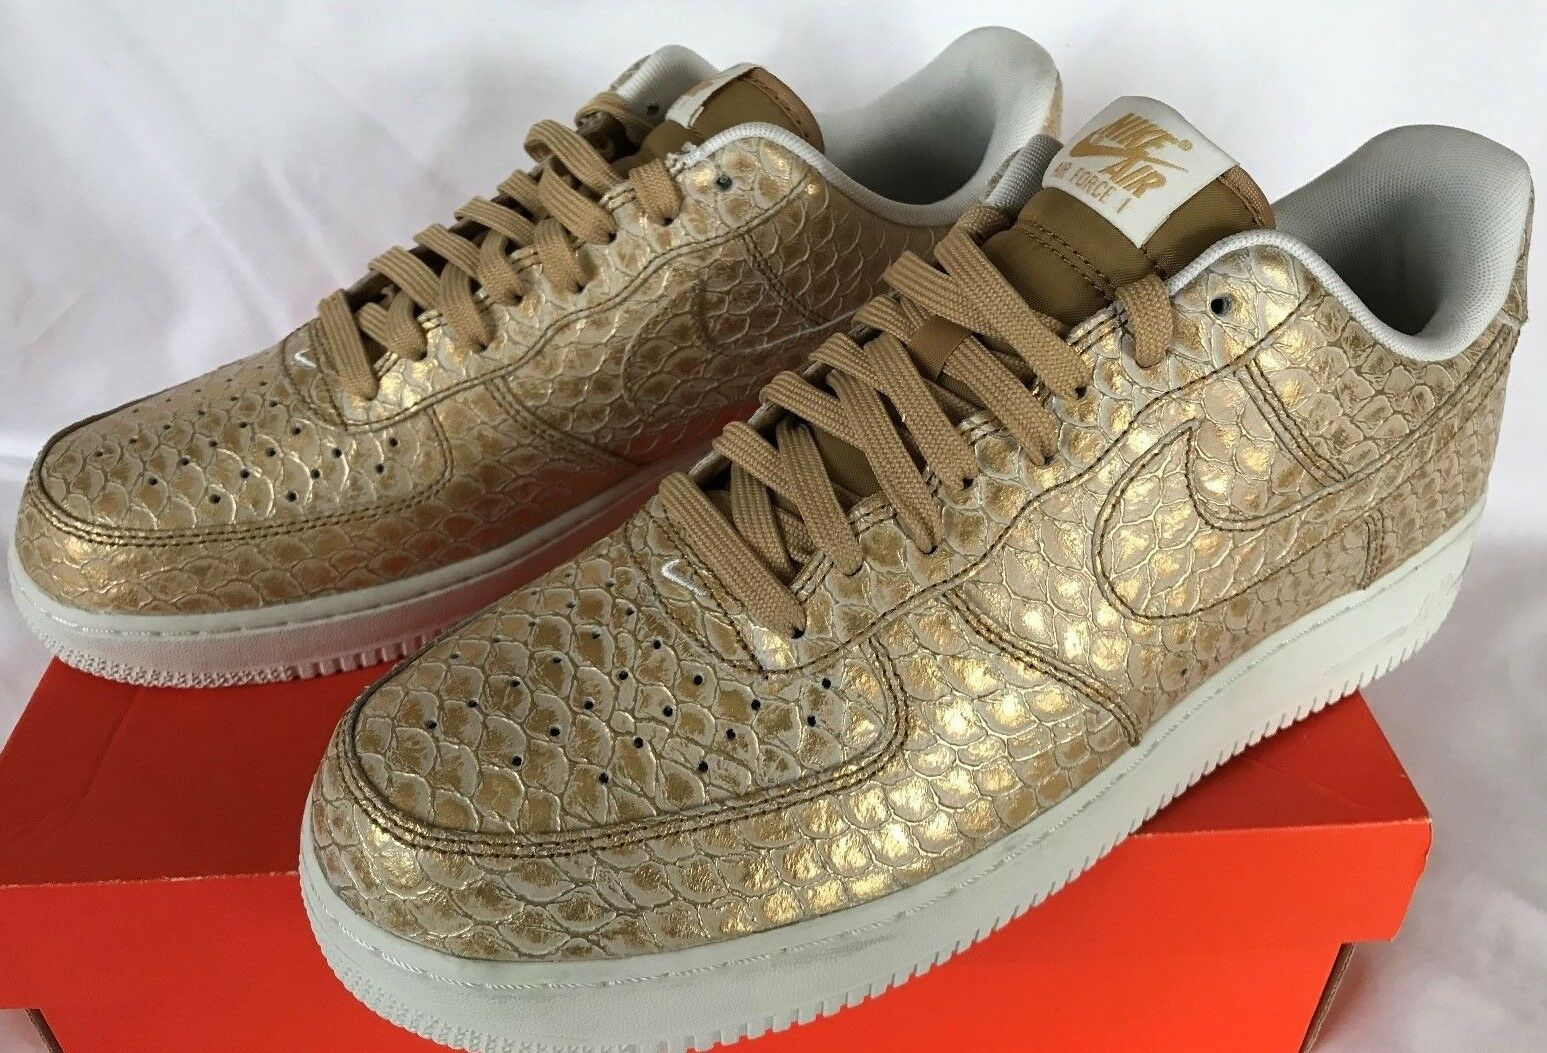 Nike Air Force 1 LV8 07 Gold 718152-701 Snake Retro Basketball Shoes Men's 11 Special limited time